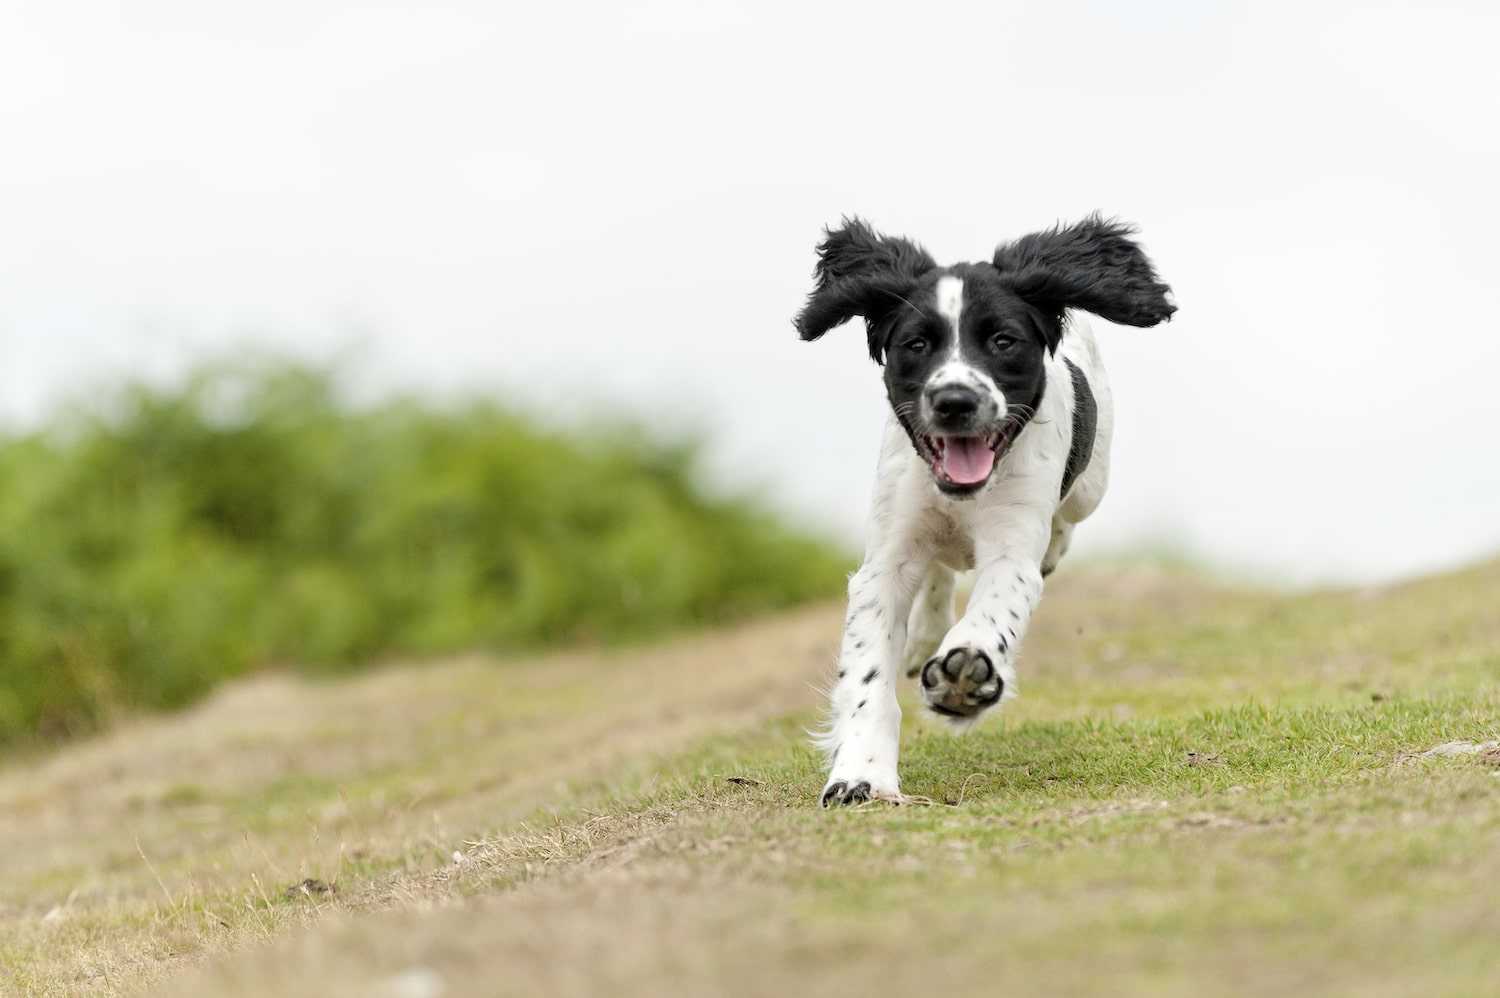 How Much Exercise Does a Dog Need?